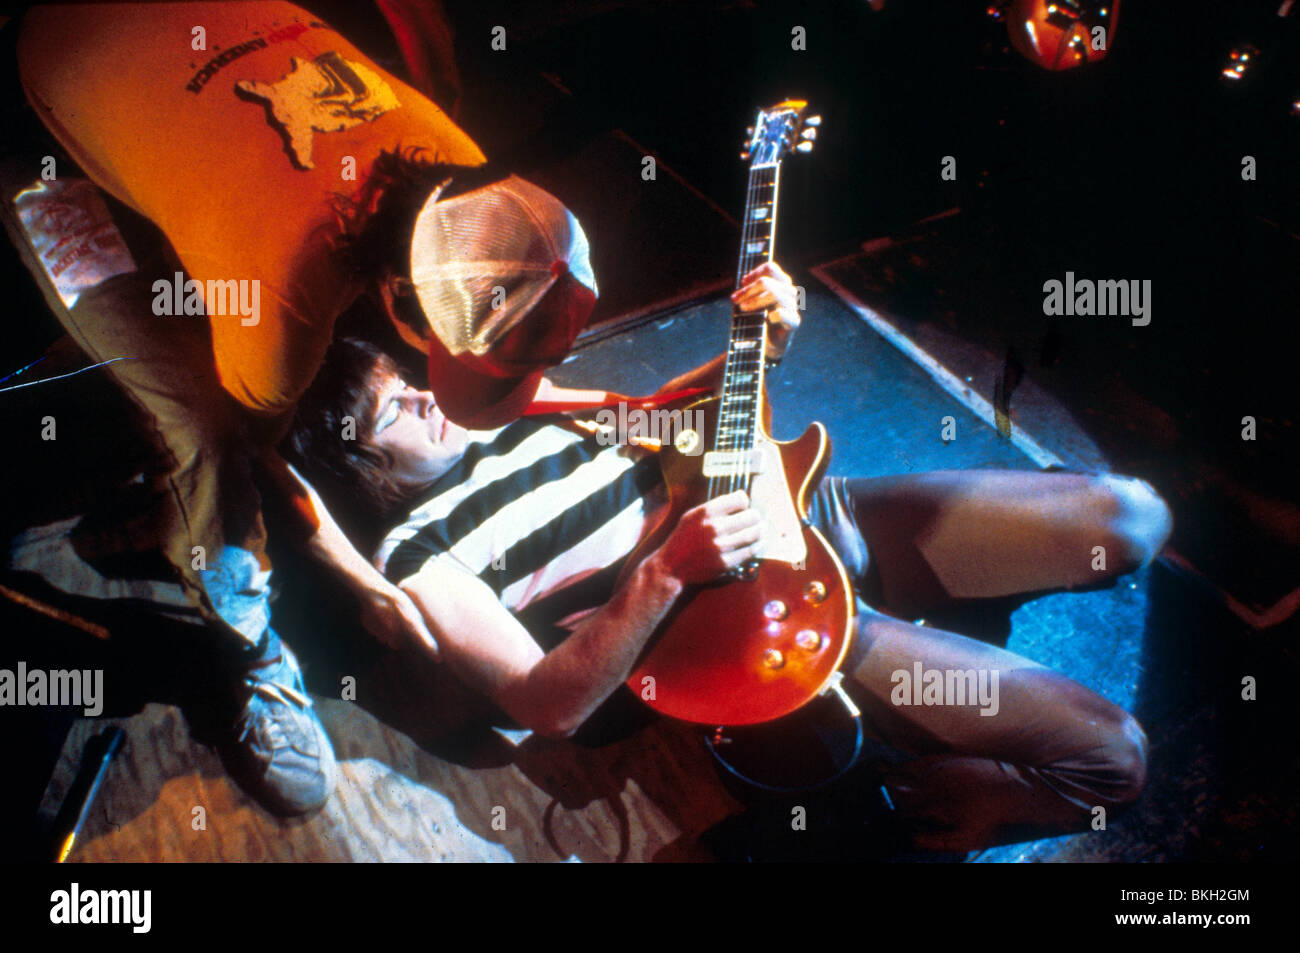 DIES IST IS SPINAL TAP (1984) CHRISTOPHER GUEST TL 002 Stockbild